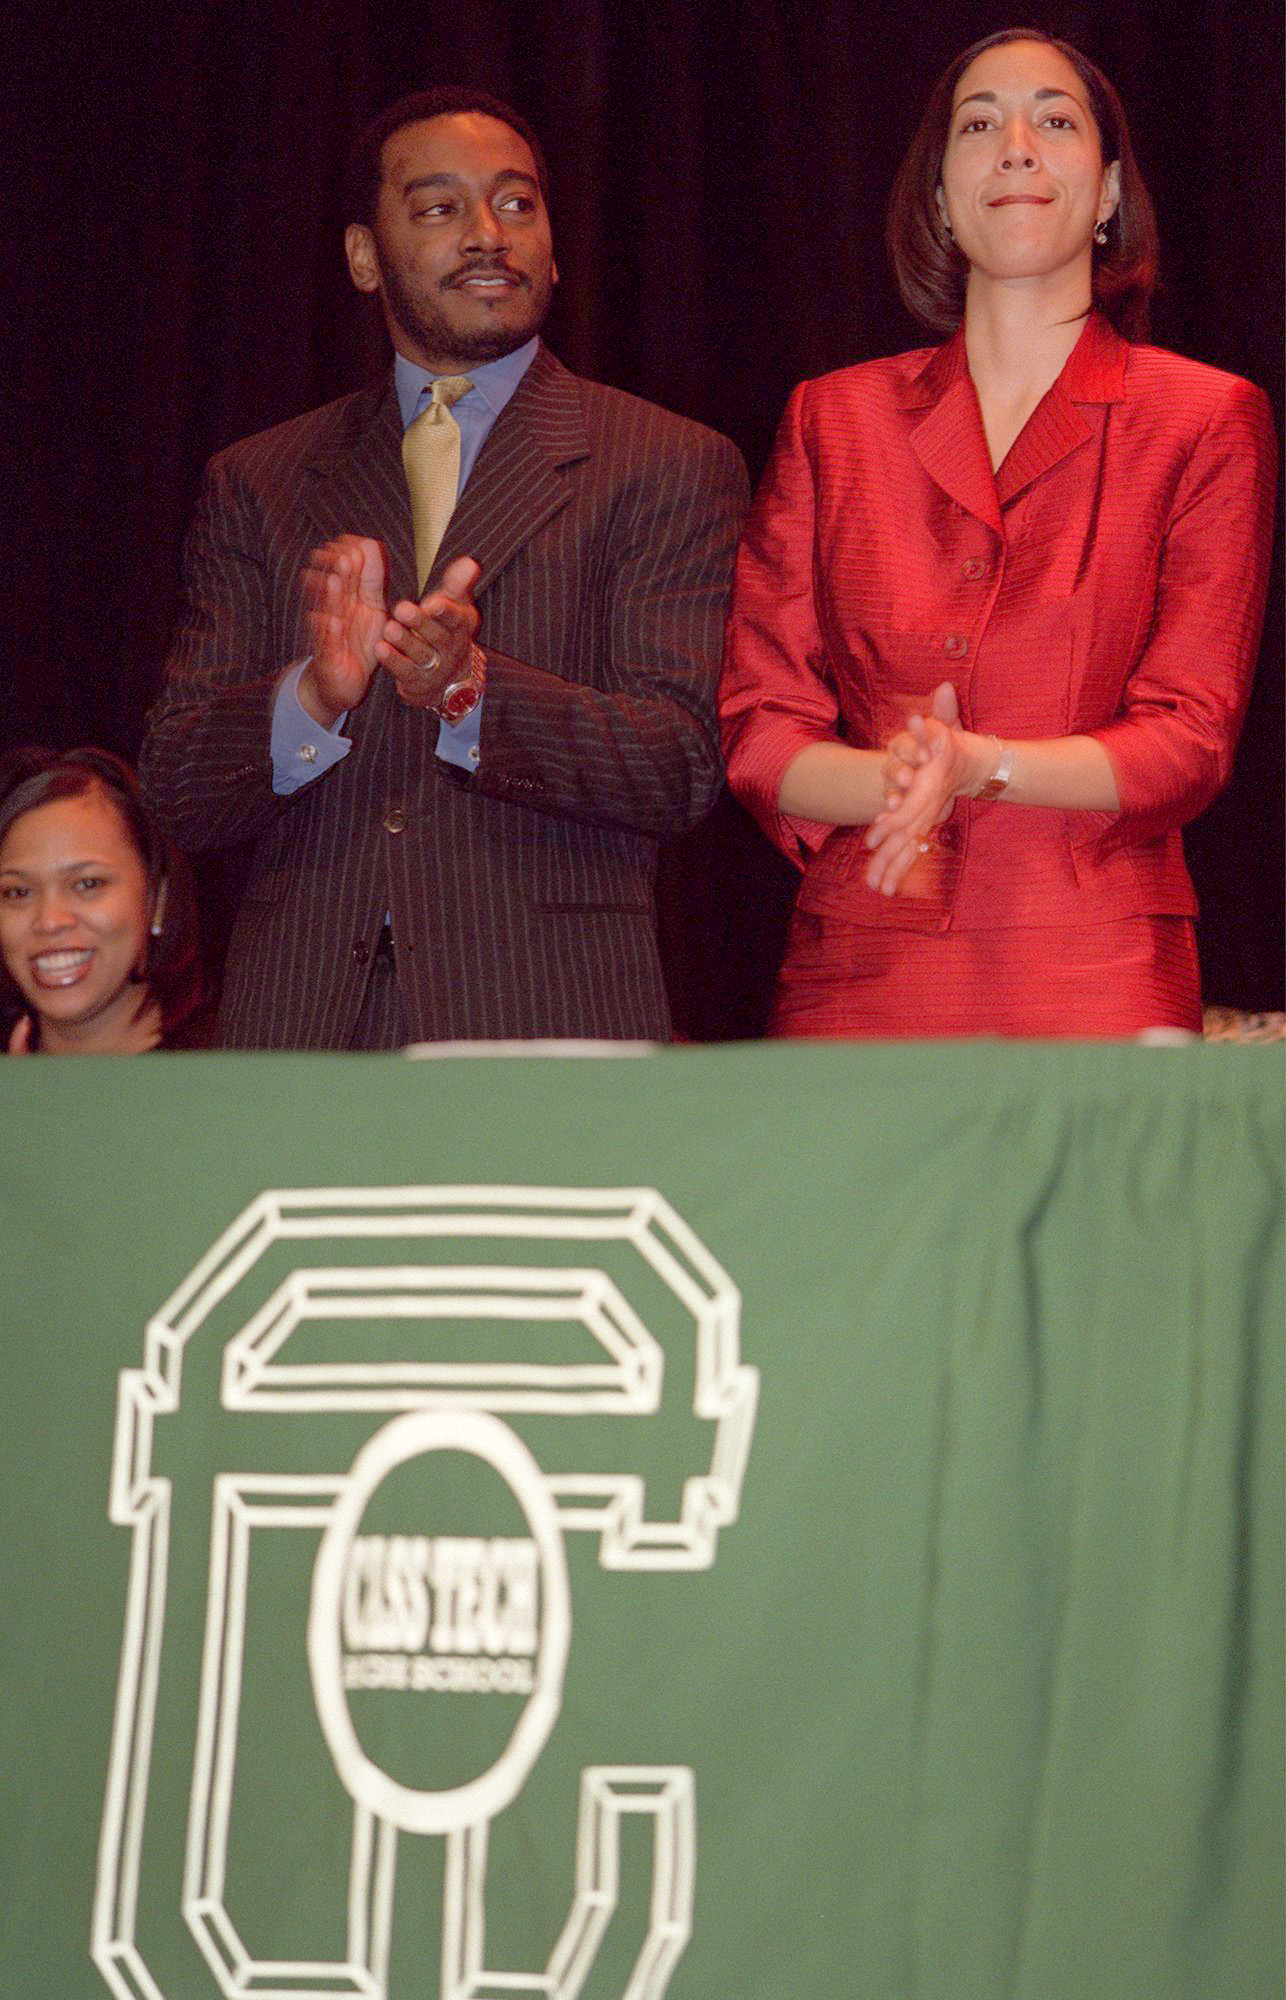 Derrick Miller and Christine Beatty at a community reception at Cass Tech during Kwame Kilpatrick's inaugural ceremonies in 2001.  Courtesy of the Detroit Free Press.